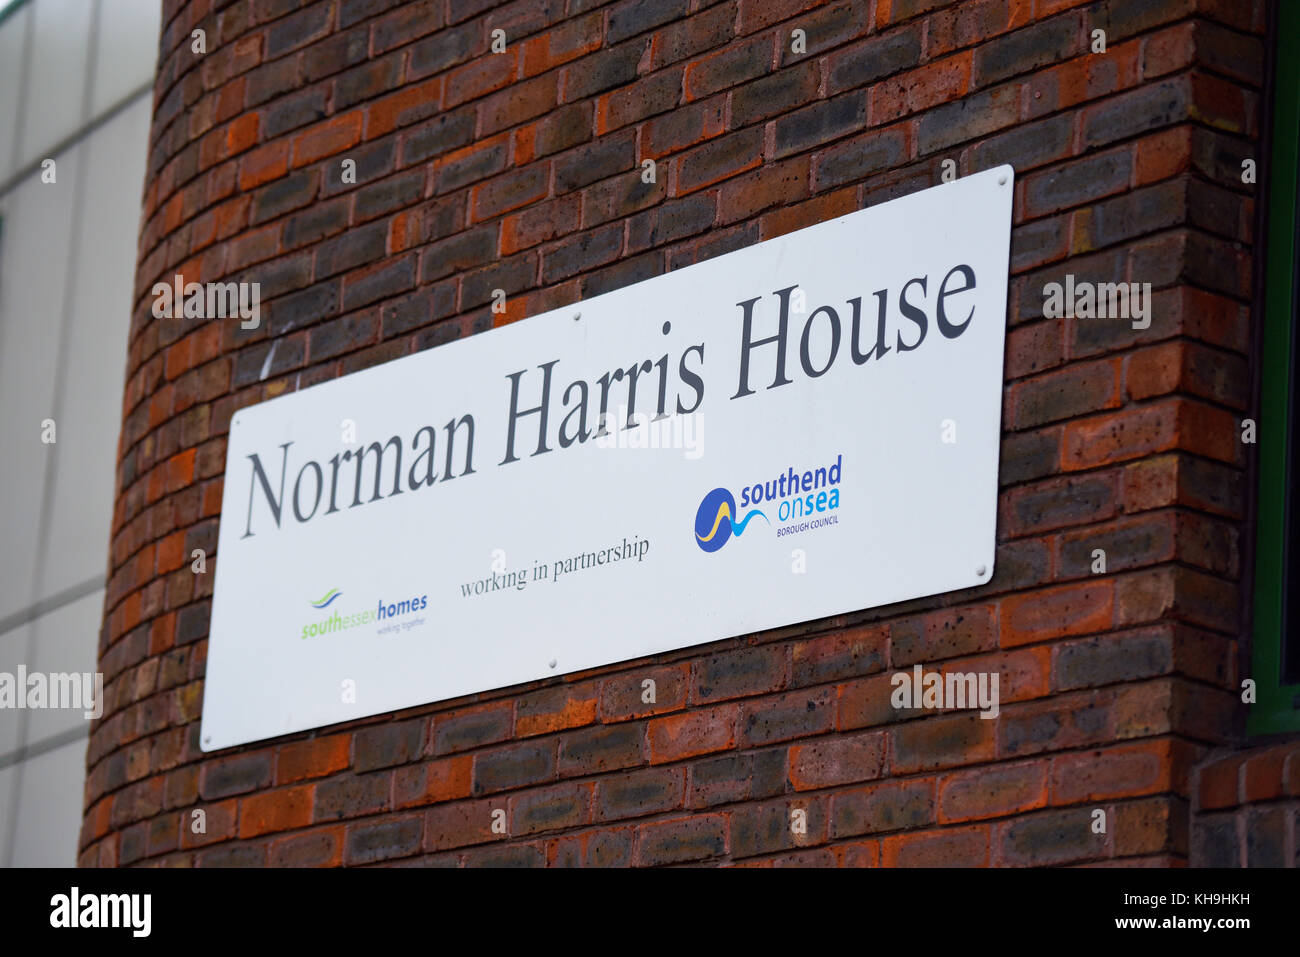 Norman Harris House sheltered housing scheme. South Essex Homes Southend Borough Council accommodation. Space for - Stock Image